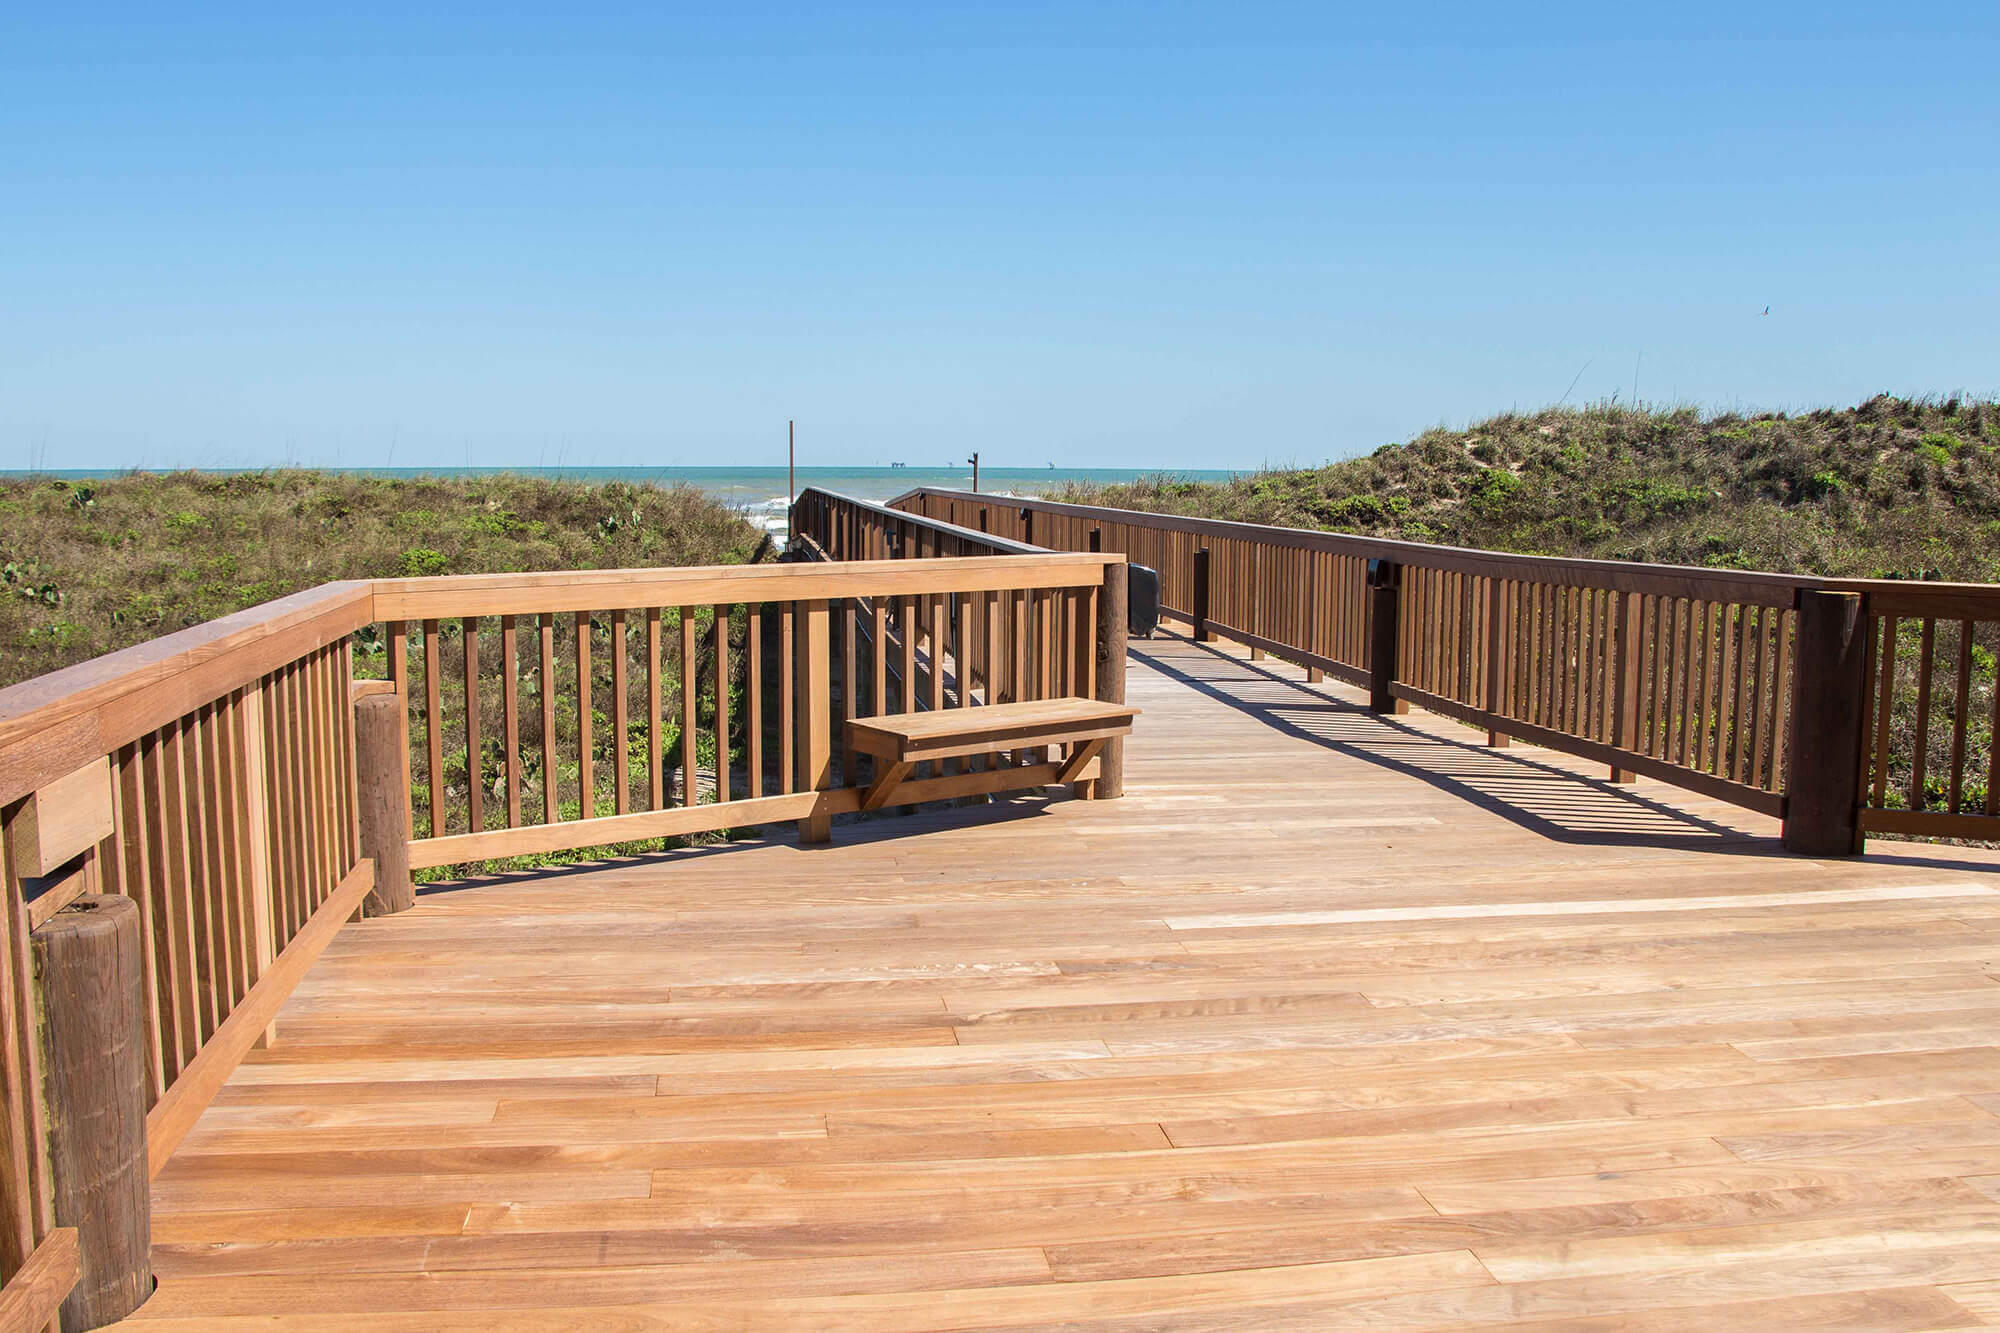 New sandpiper boardwalk port aransas texas vacation rentals for Fishing cabins for rent in texas